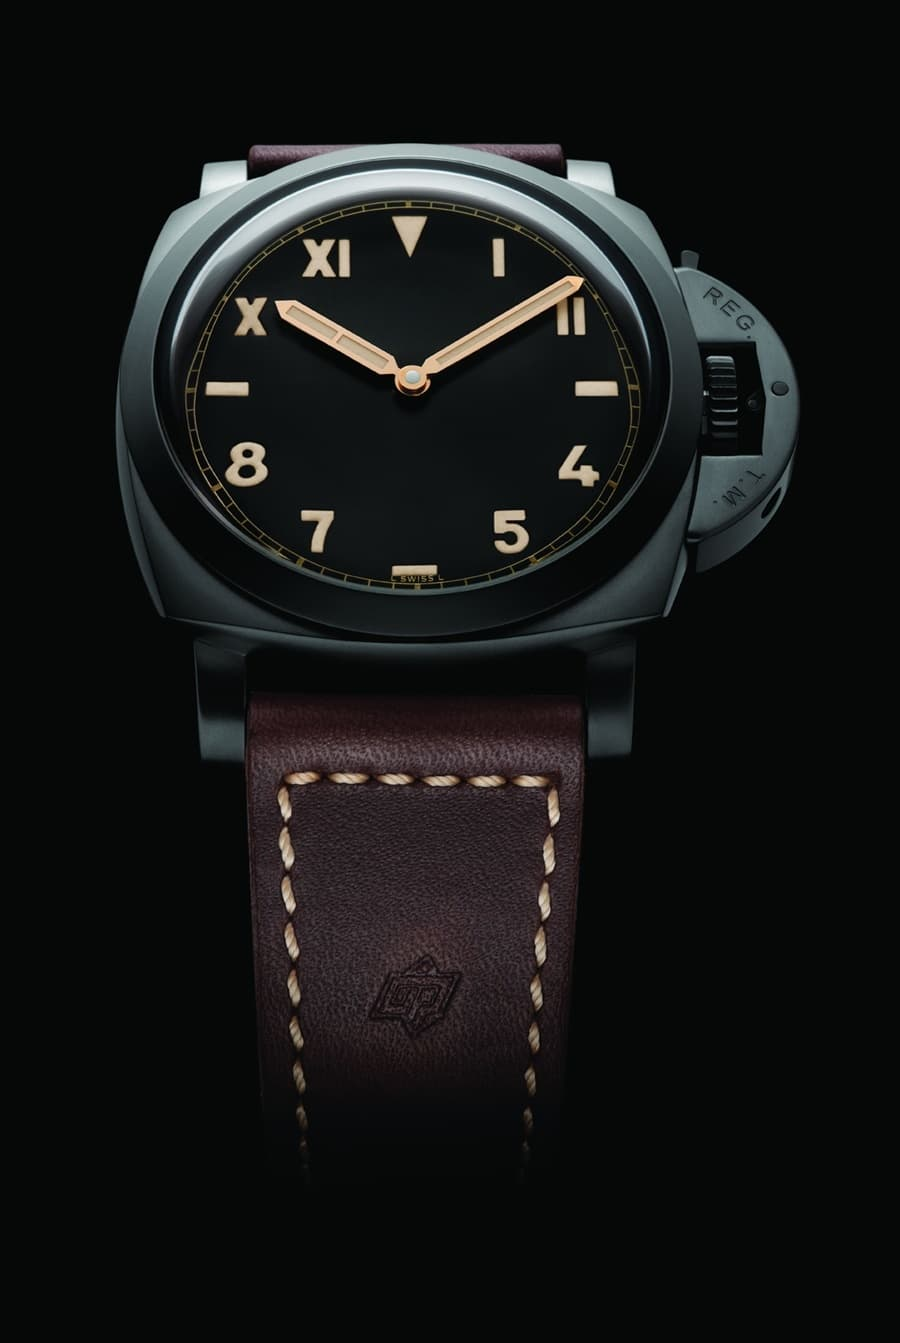 Panerai: Luminor 1950 3 Days Titanio DLC